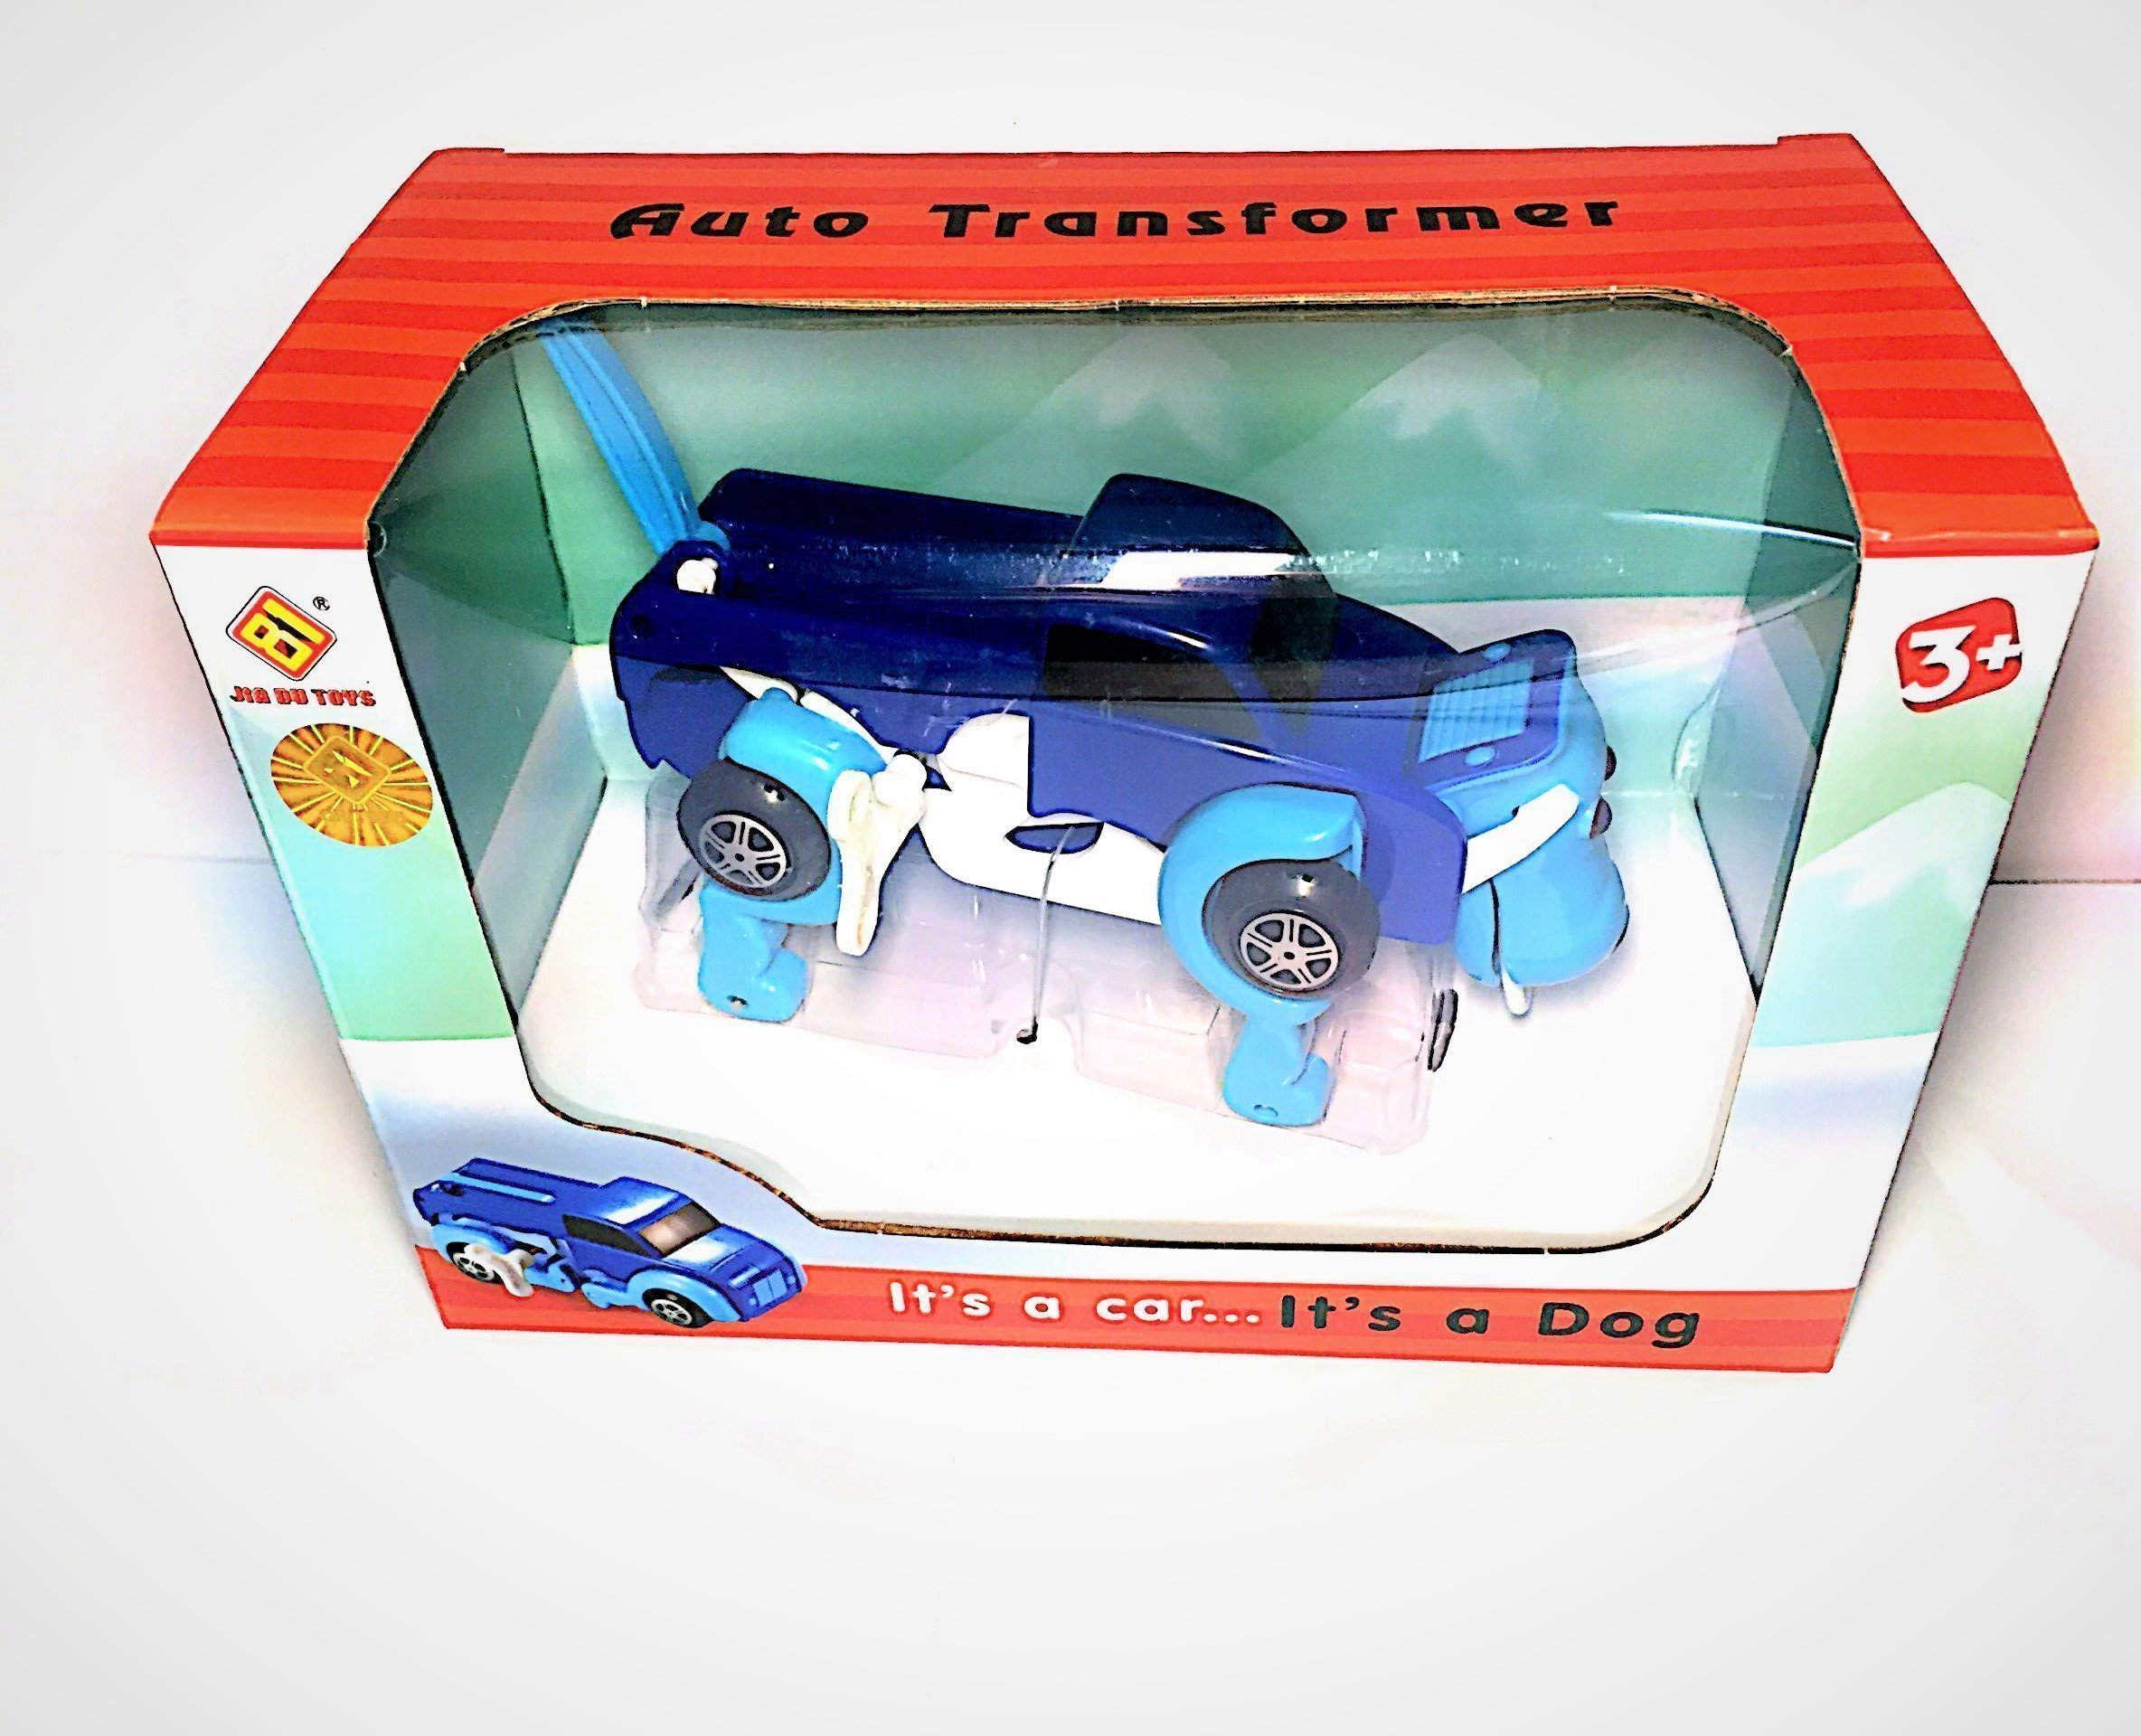 YEEMAX Dog and Car Combo Transforming Toy - Ideal Wind up Toy Gift - Preschool Toys (Blue)